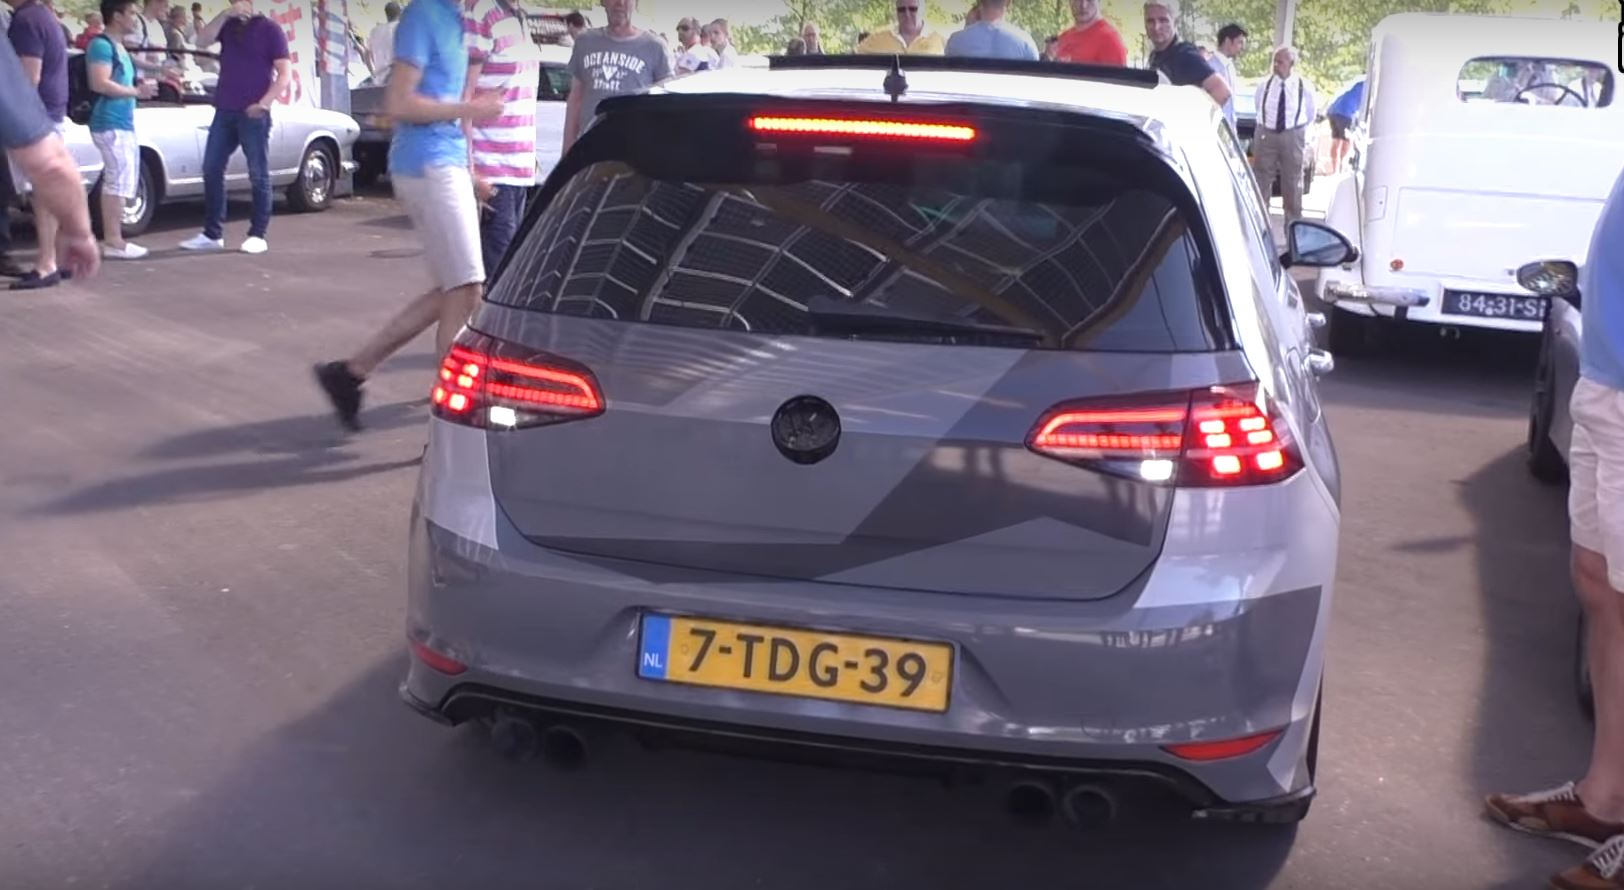 Armytrix Golf 7 R Exhaust Is Deafeningly Loud - autoevolution